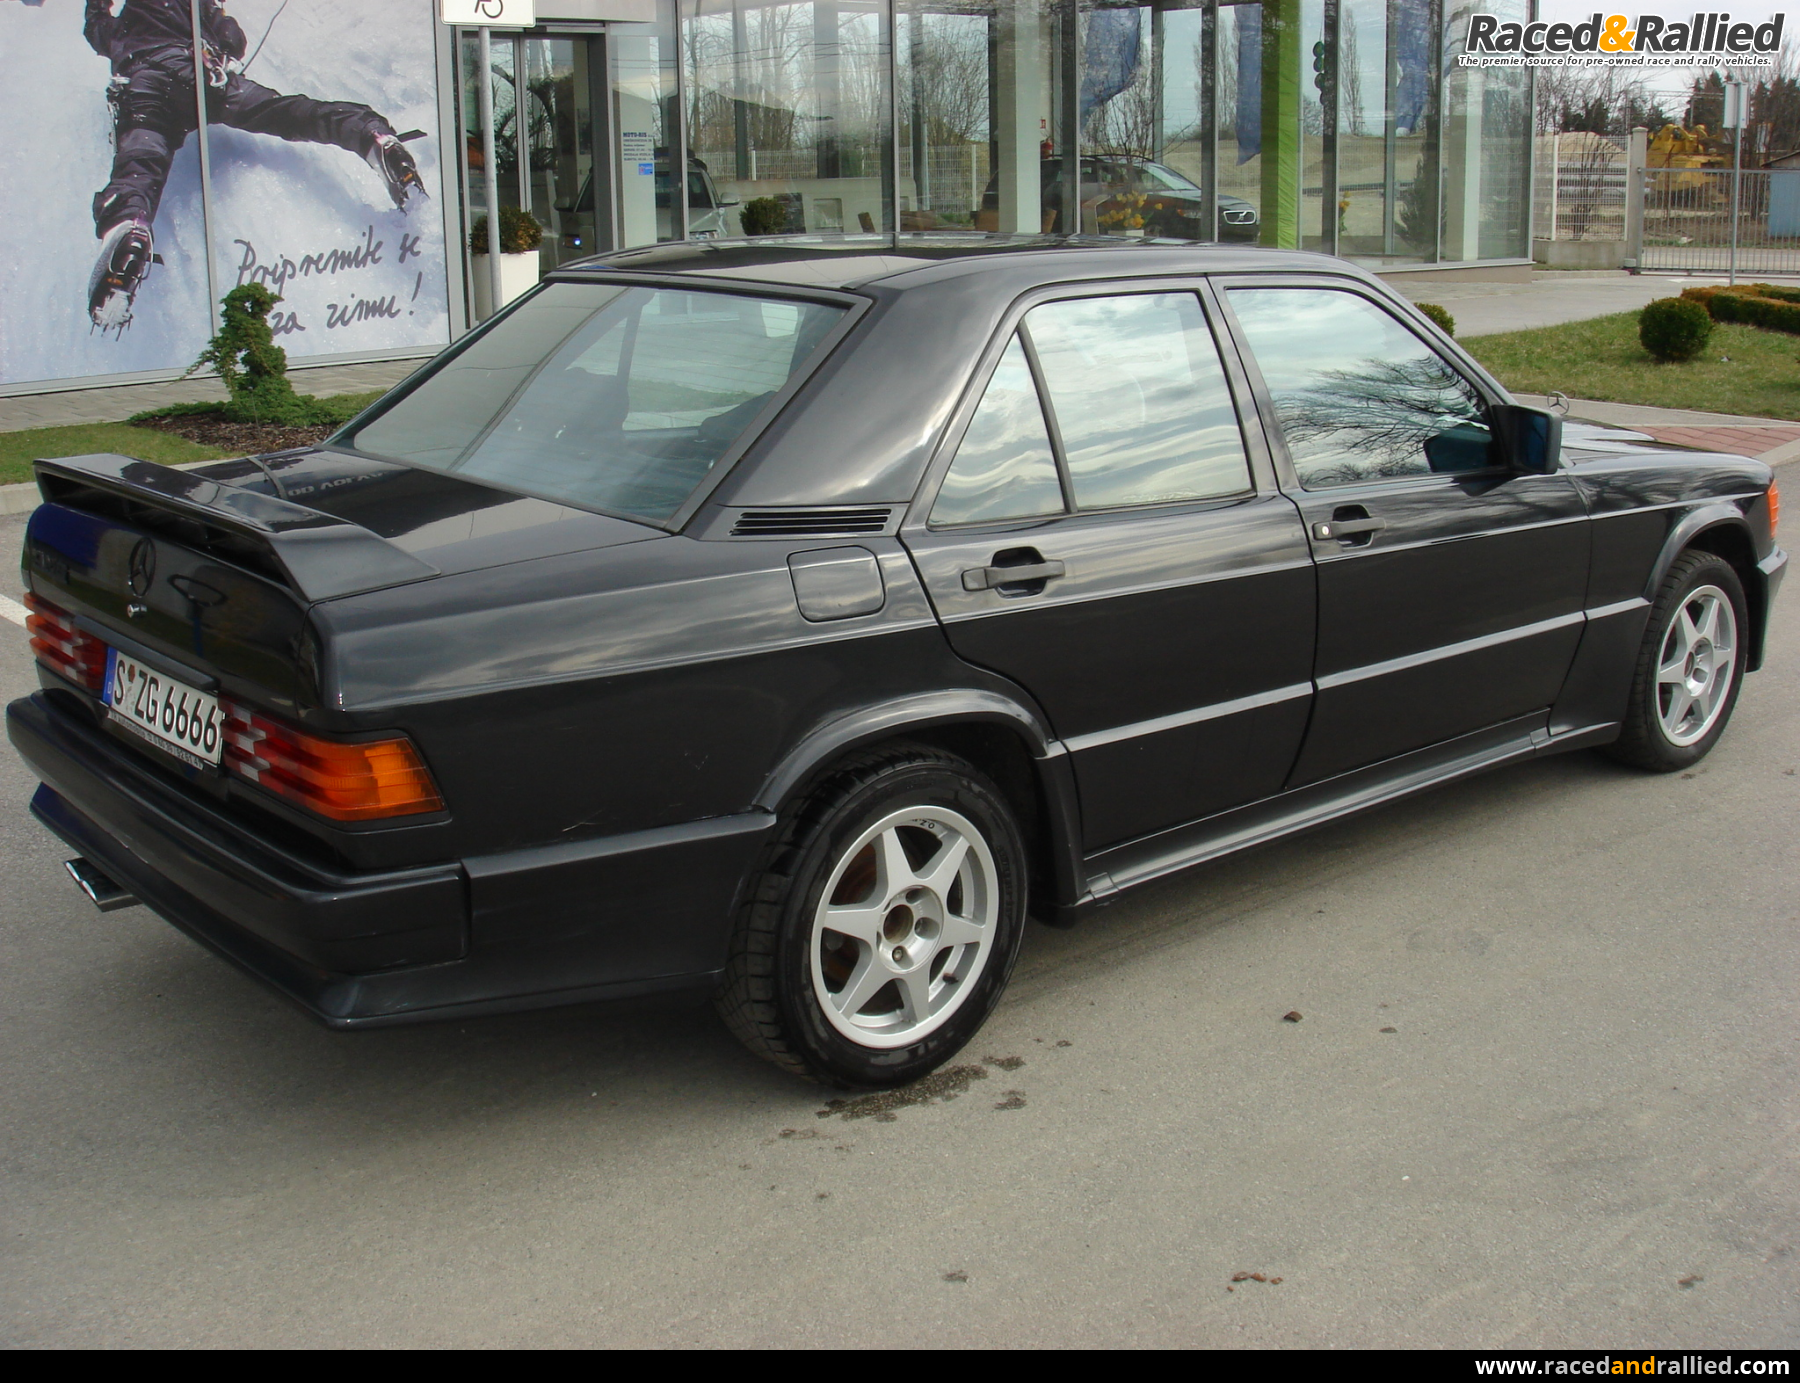 mercedes 190e 2 3 16 amg performance trackday cars for sale at raced rallied rally cars. Black Bedroom Furniture Sets. Home Design Ideas